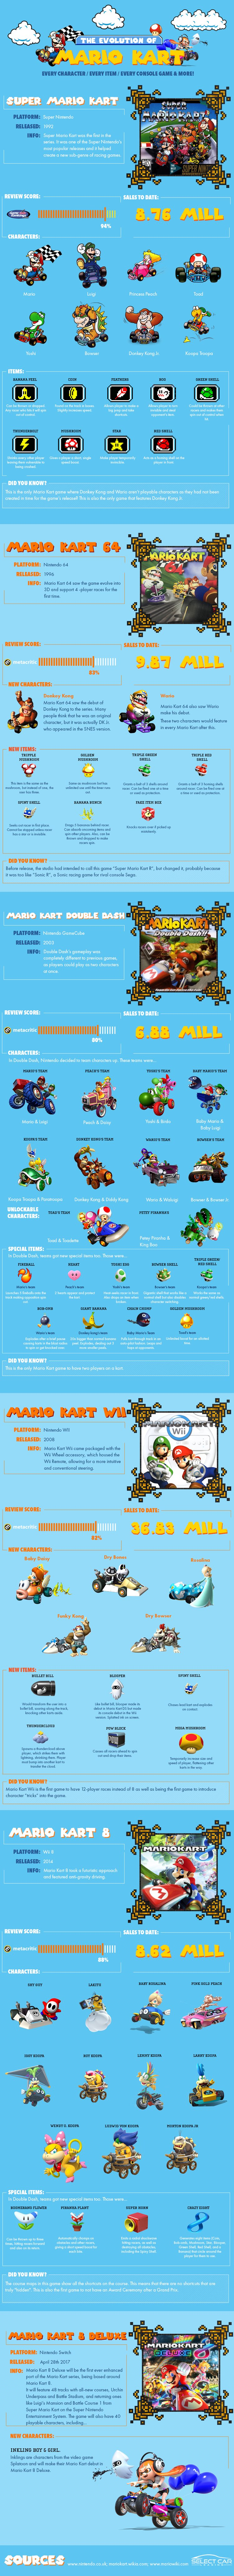 The Evolution of Mario Kart [Infographic] - ChurchMag